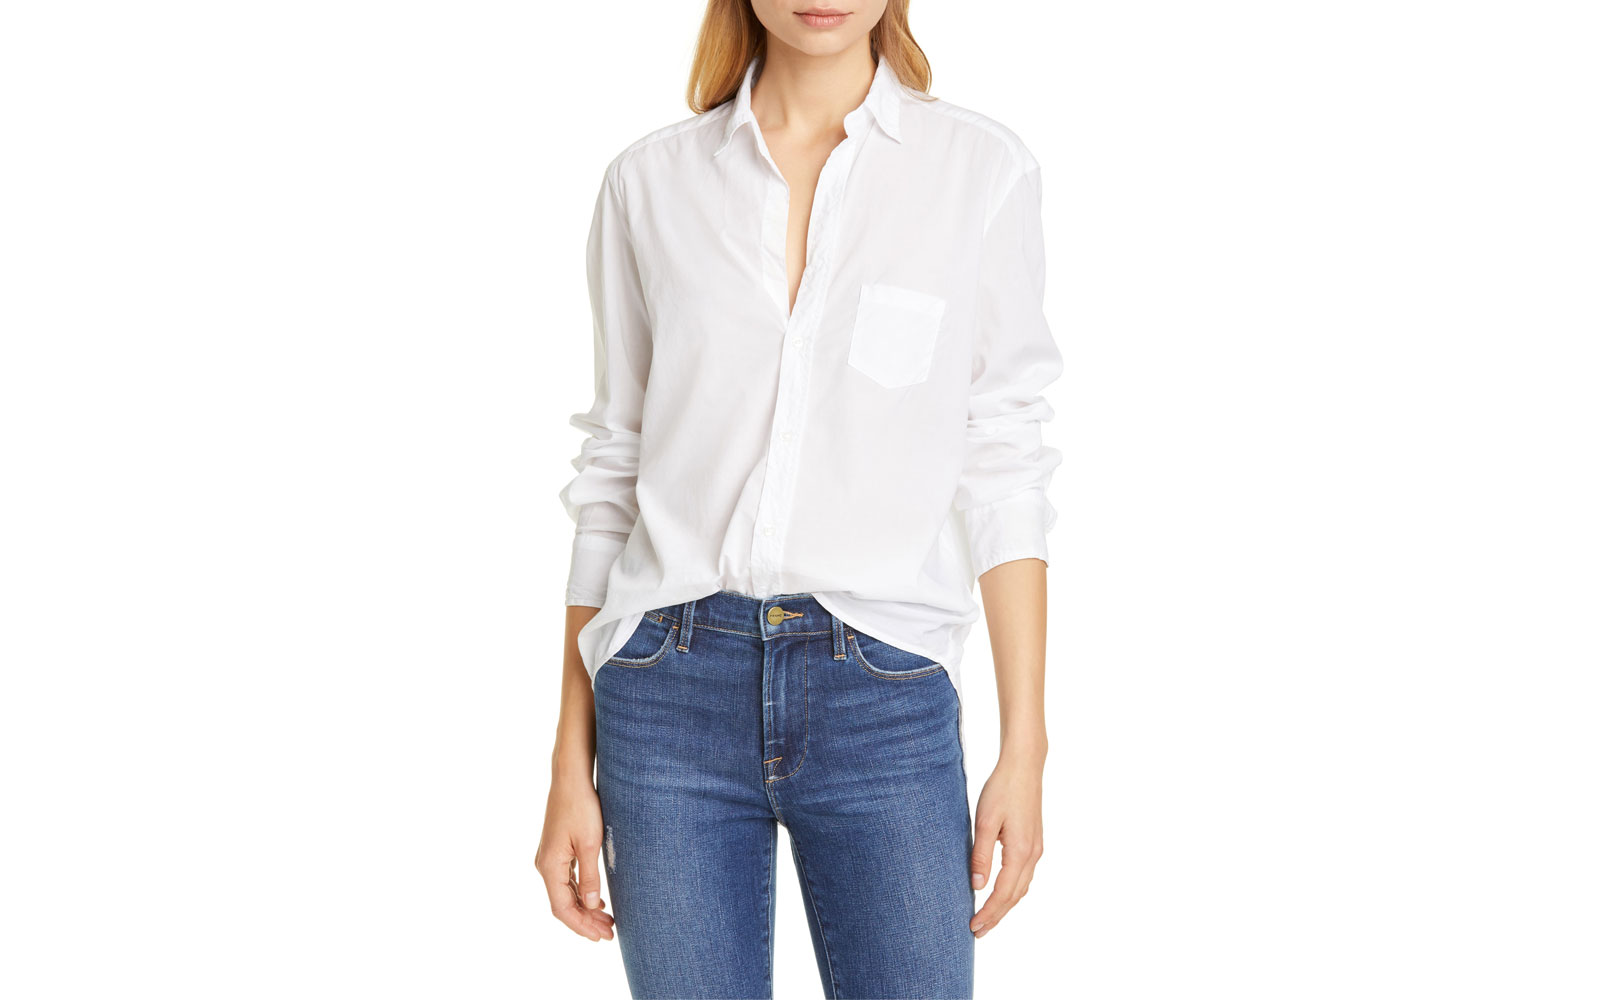 Women's white button down shirt